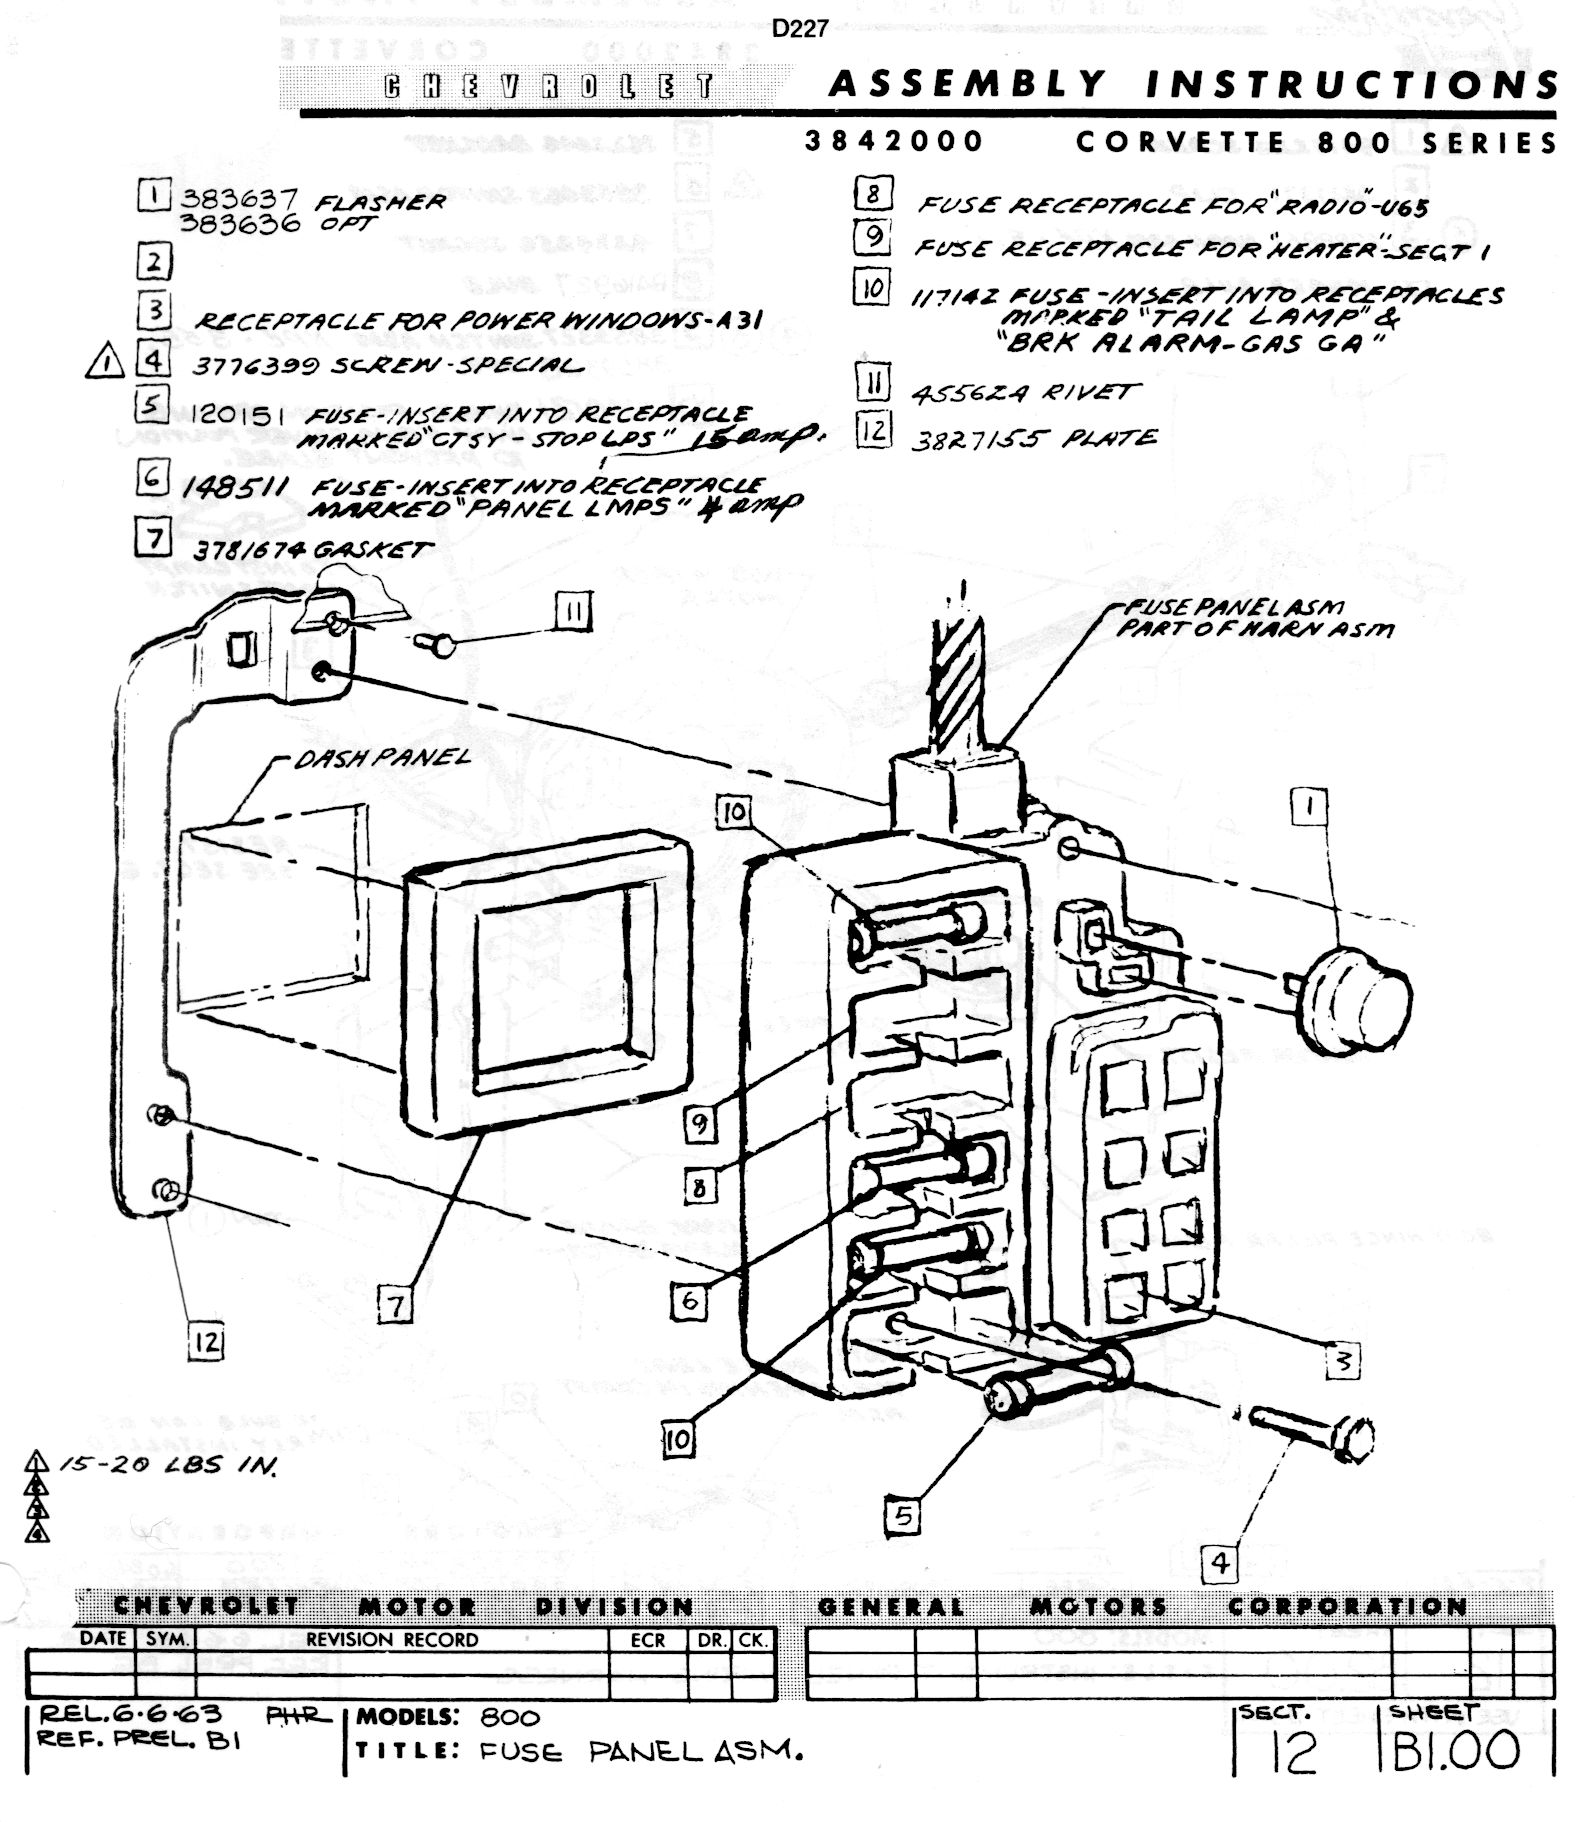 corvette fuse box diagram dgZvxgv corvette fuse box diagram image details fuse box diagram for 1977 chevy c10 at bayanpartner.co